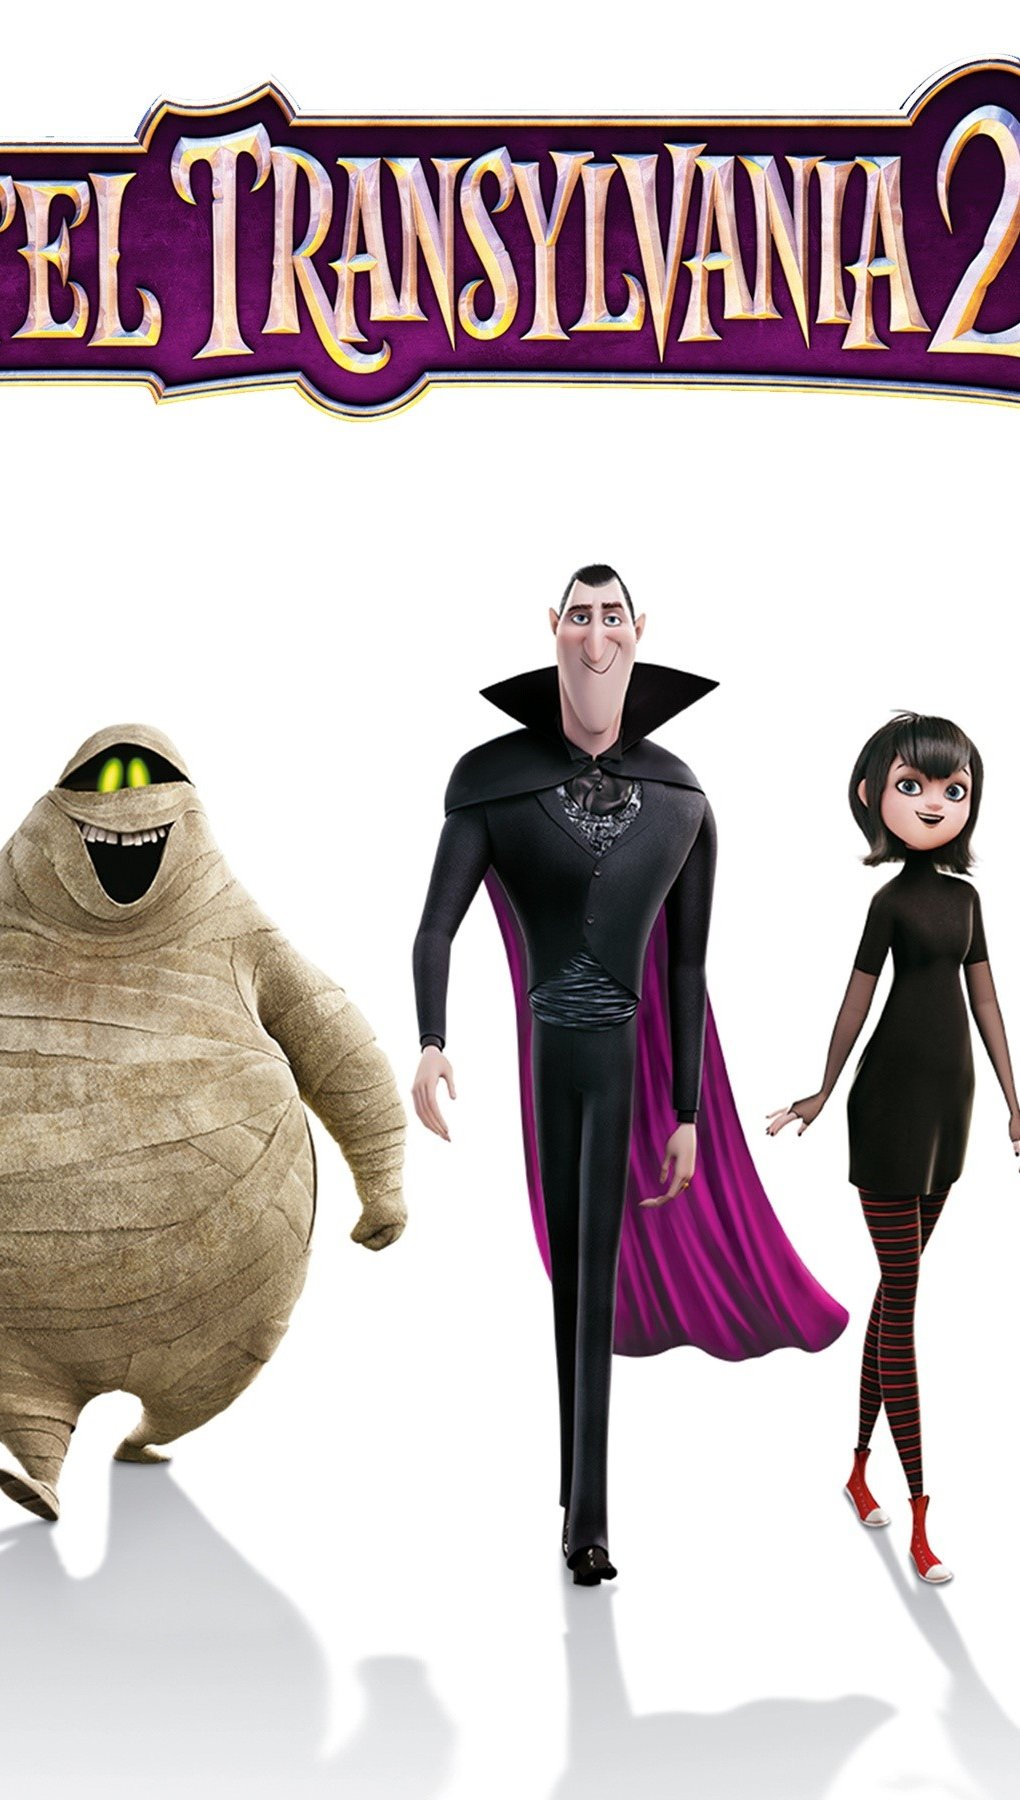 Wallpaper Hotel Transylvania 2 Vertical